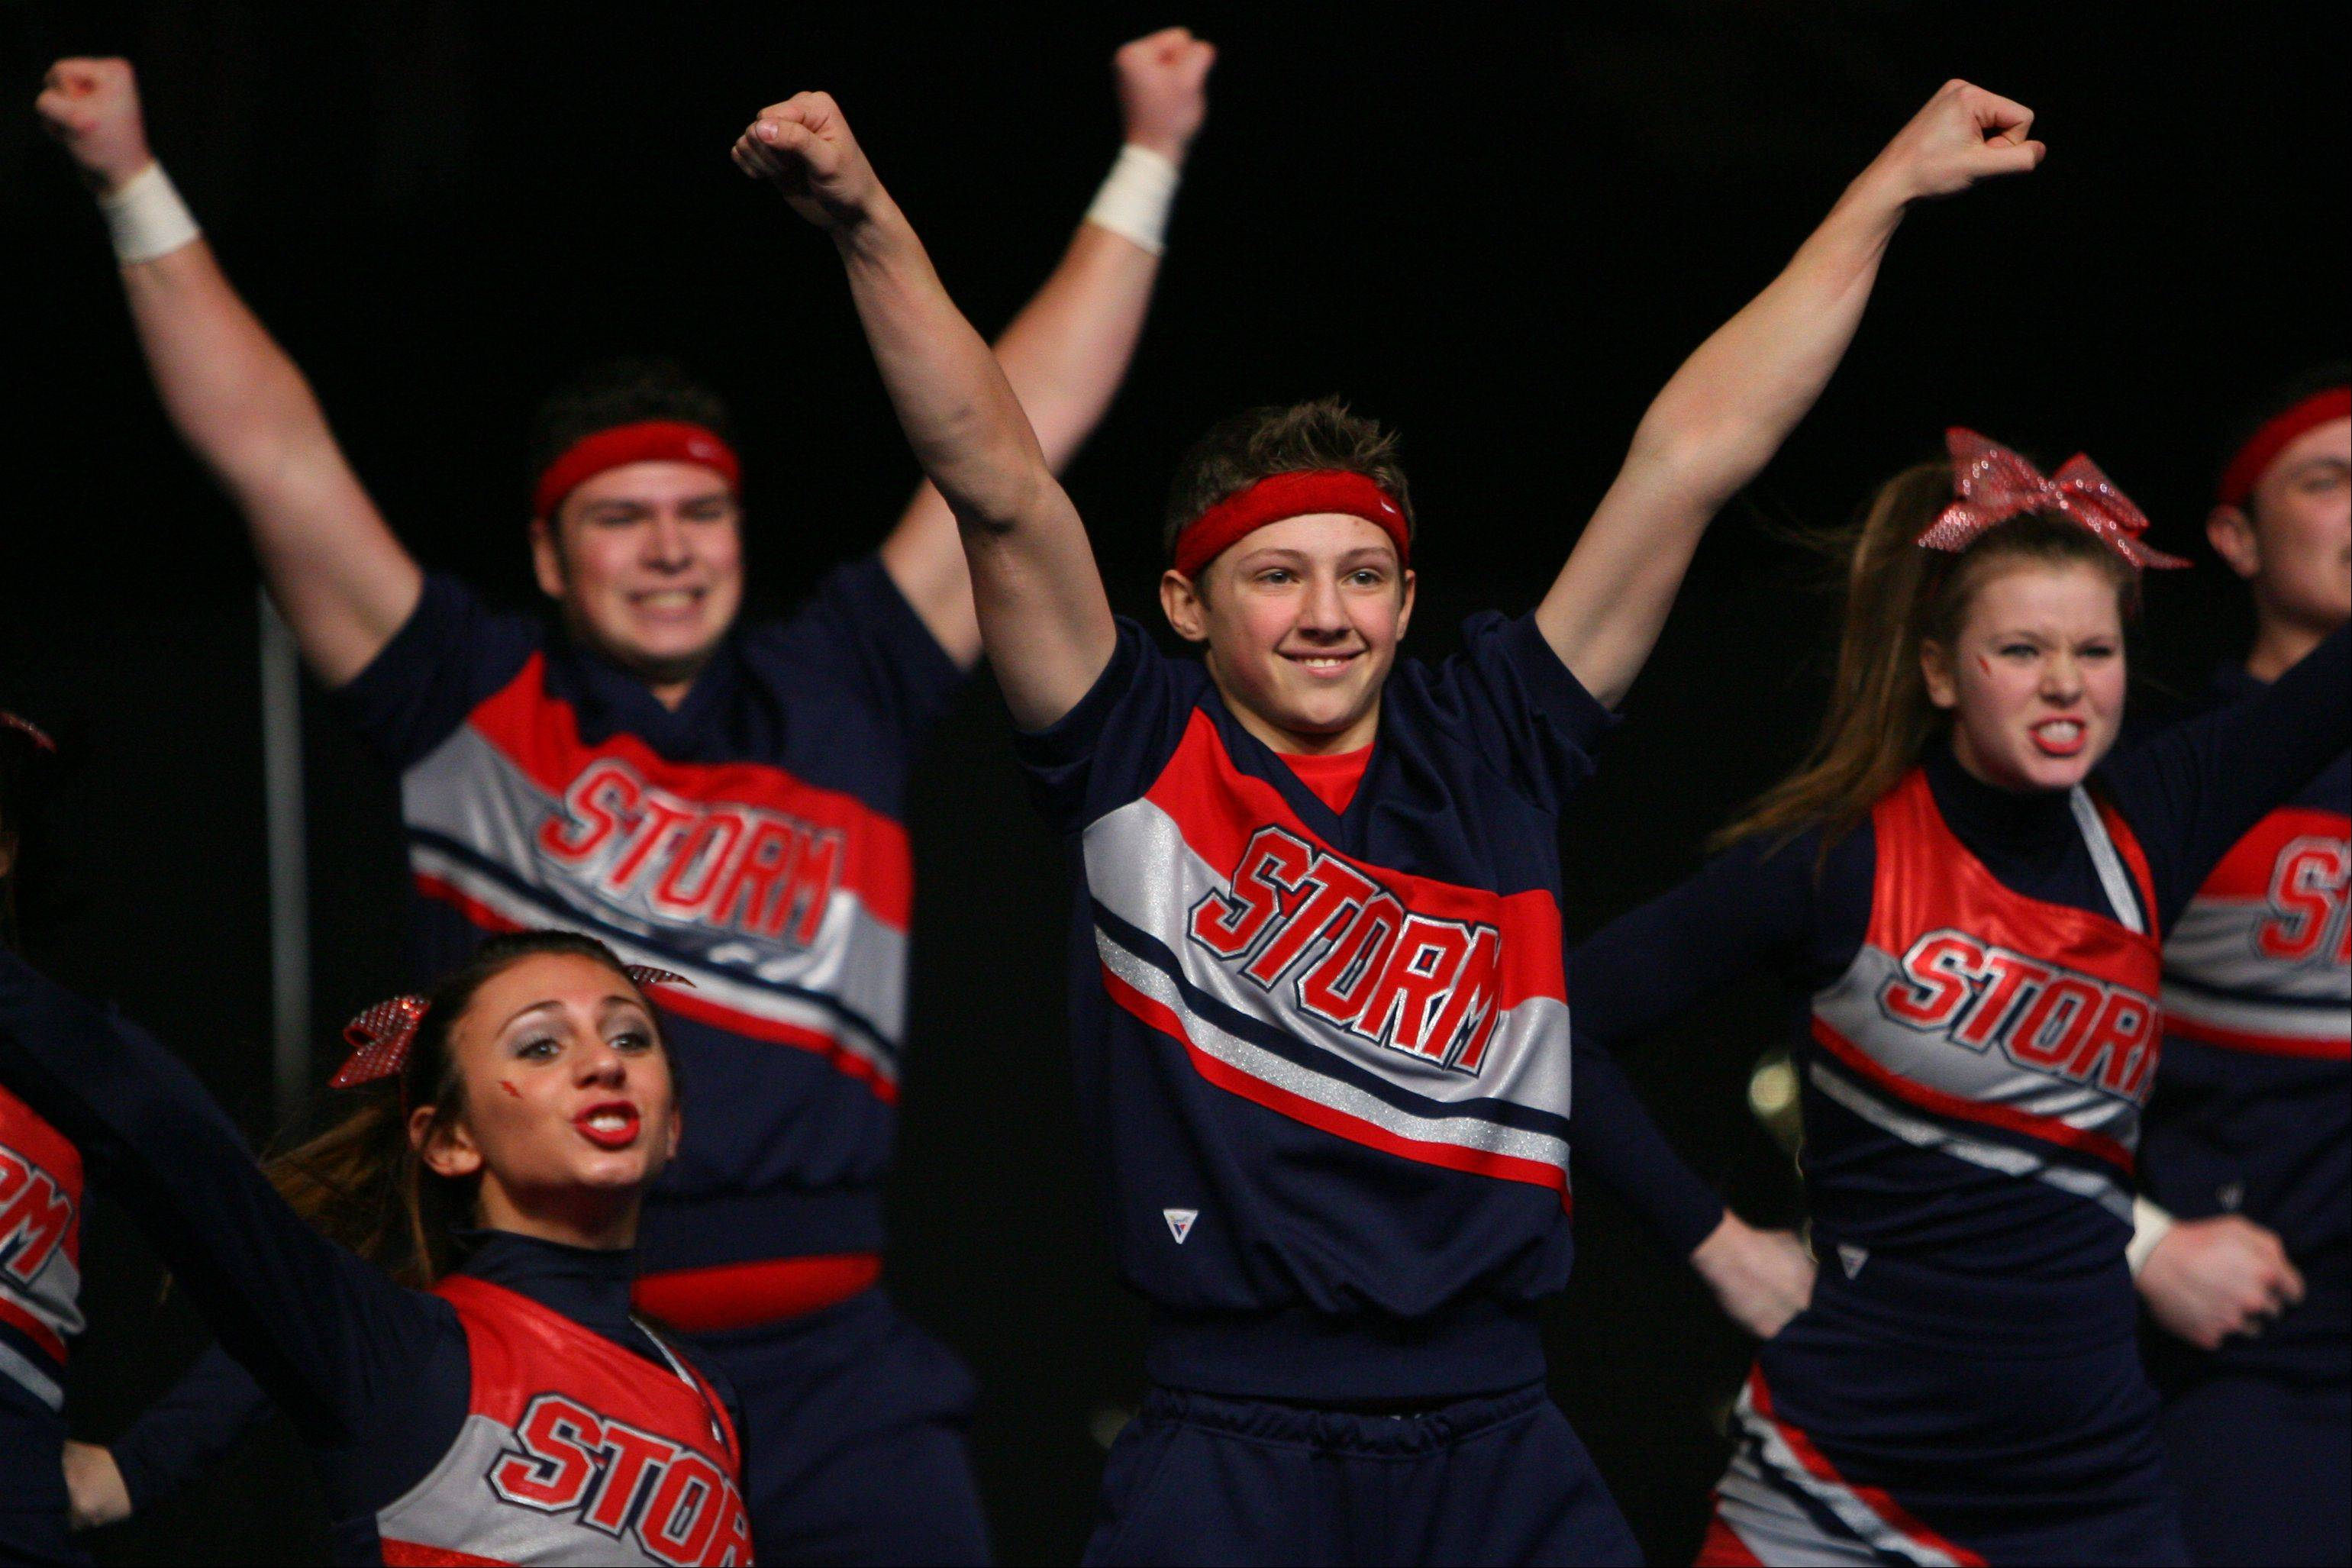 South Elgin's coed cheerleading team finished in the top 10 Friday and won a place in Saturday's finals.